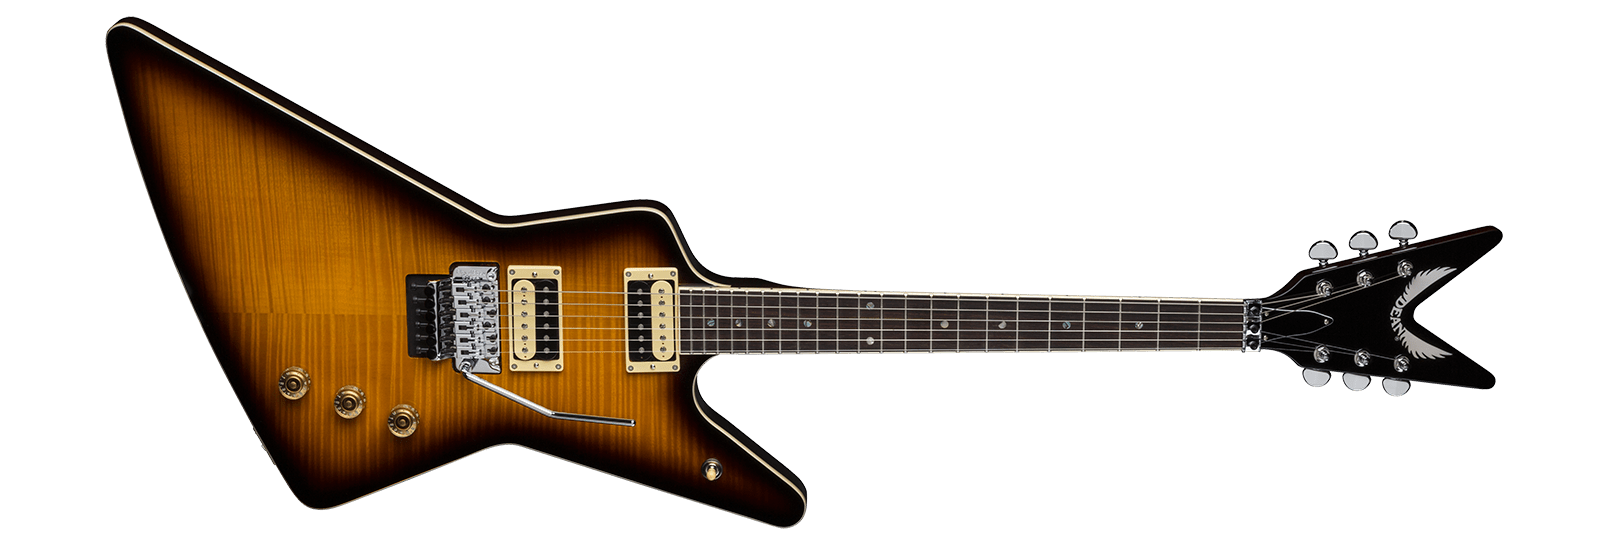 Z 79 Floyd Flame Top - Trans Brazilia